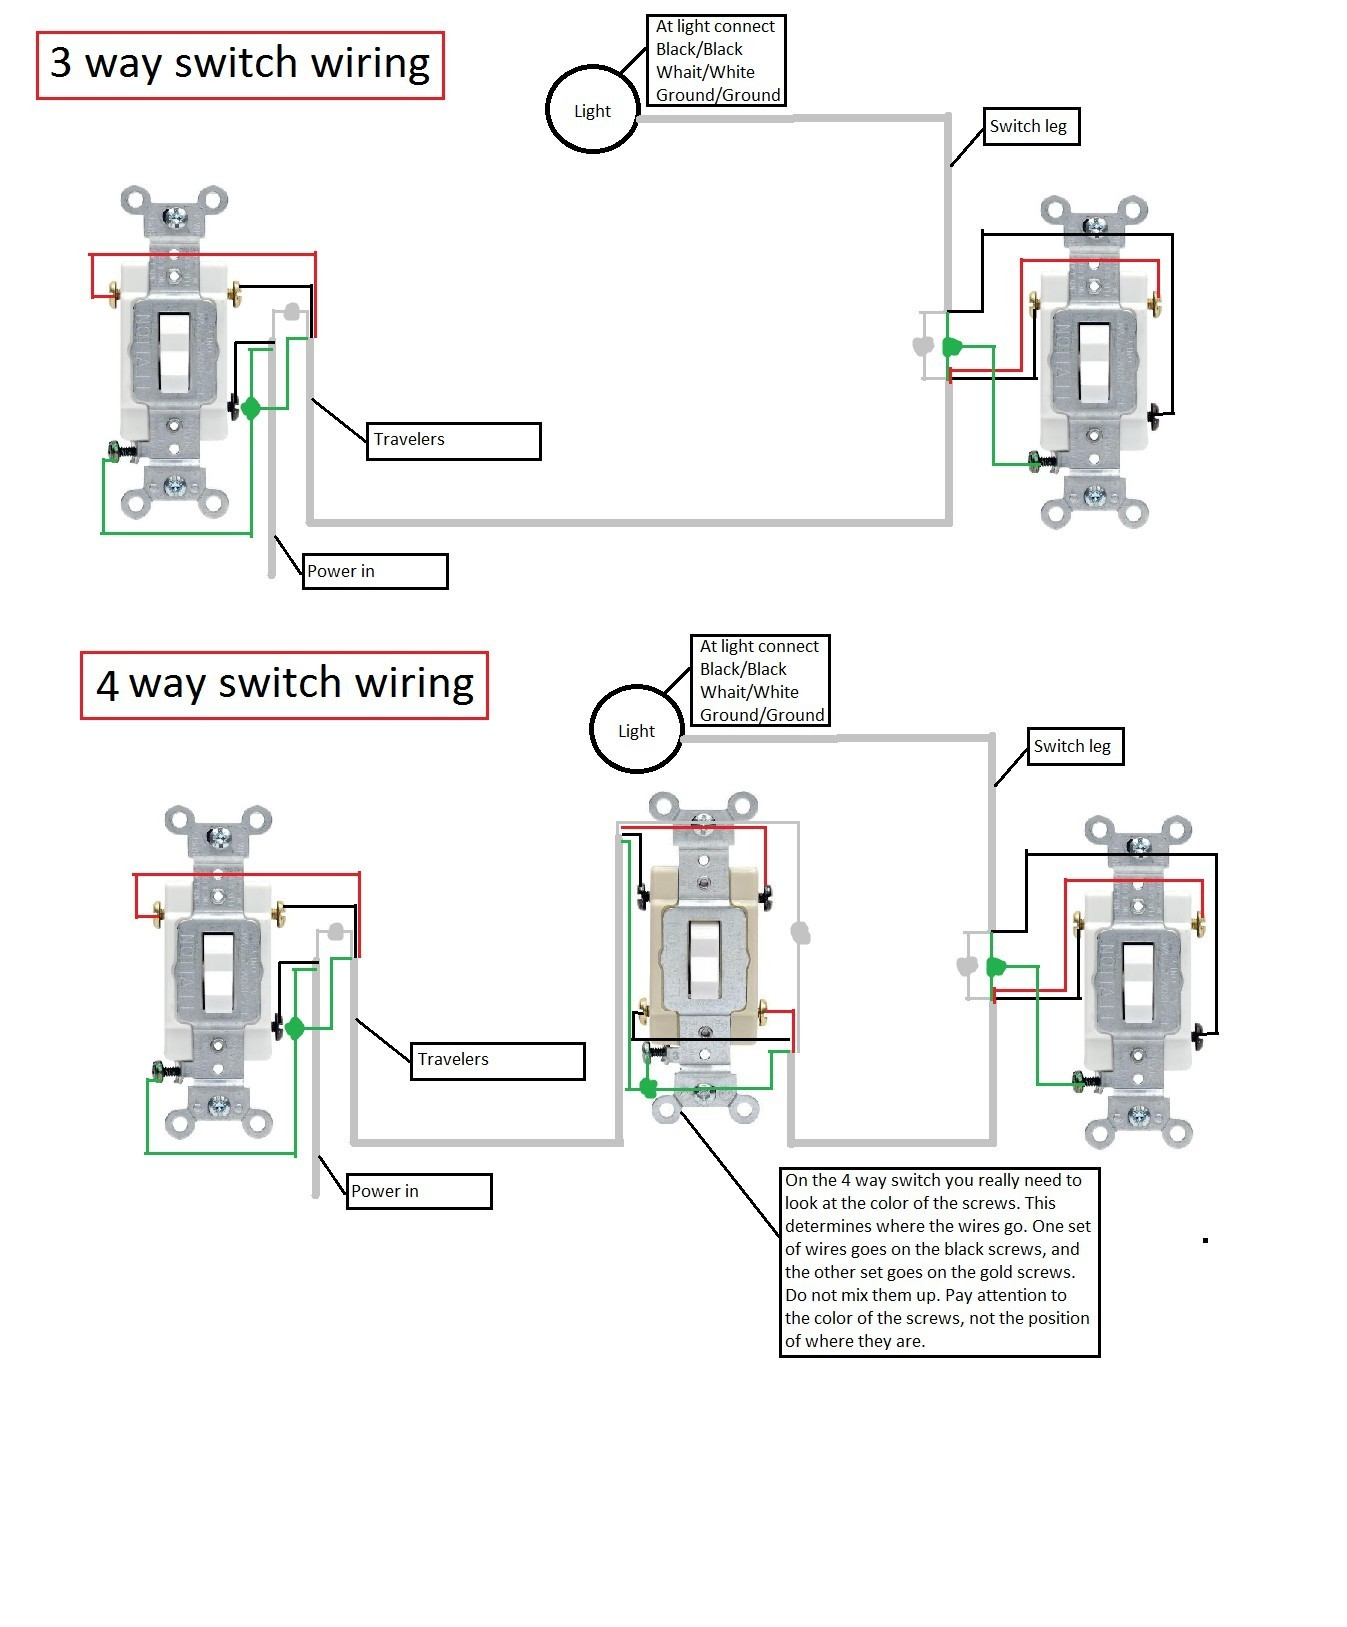 Wiring Diagram for 3 Way Switch Two Lights Valid Wiring Diagram for 3 Way Lighting New